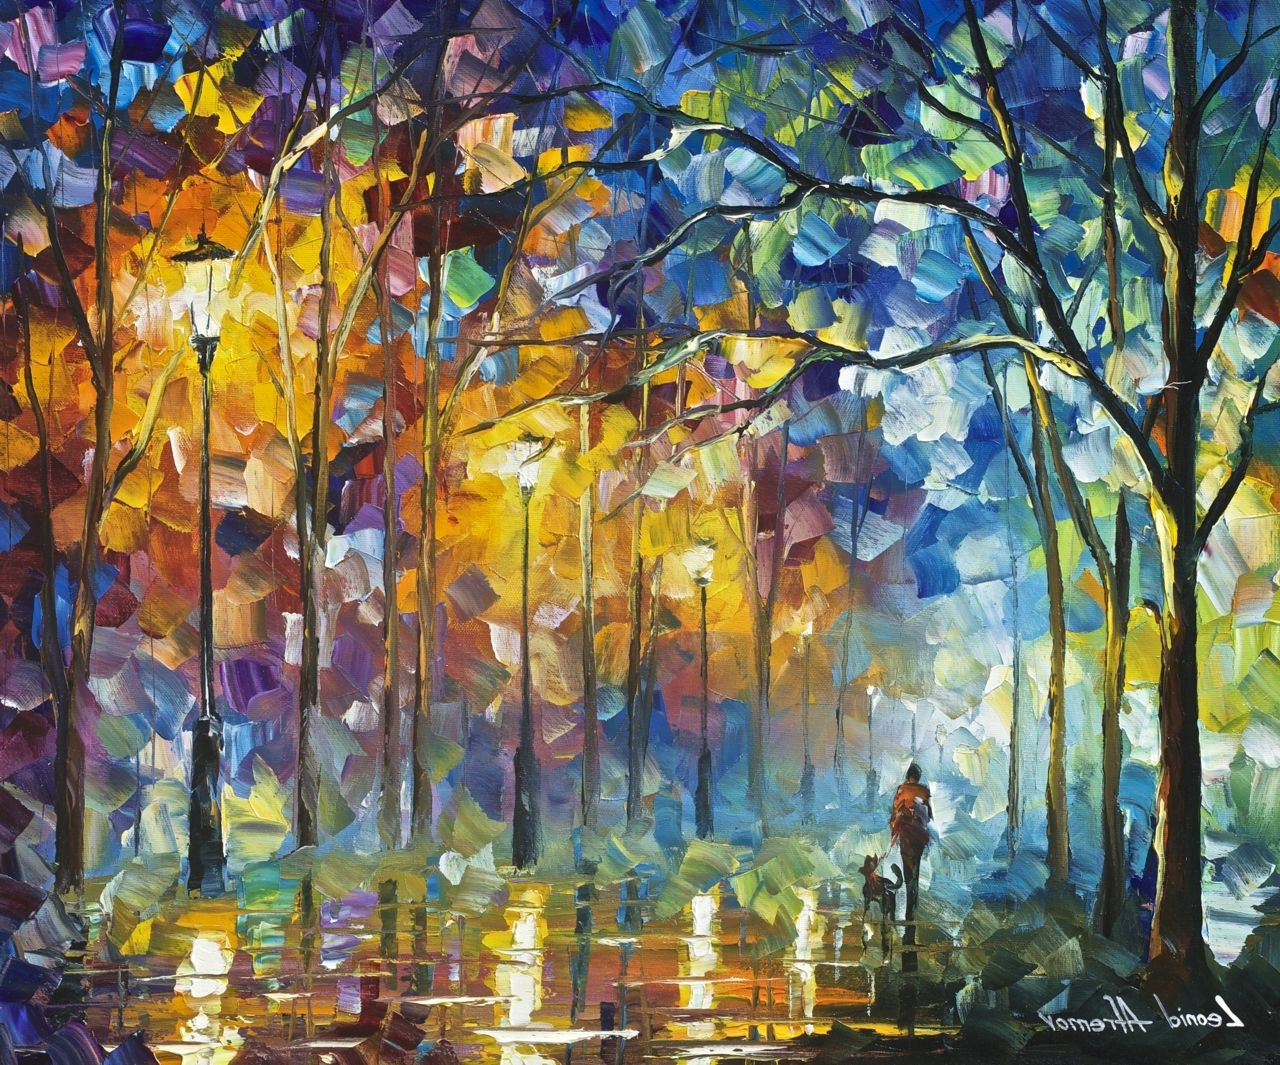 Wall Art Paintings Intended For Well Known Friends Forever – Original Oil Painting – Wall Art Canvasleonid (View 10 of 15)